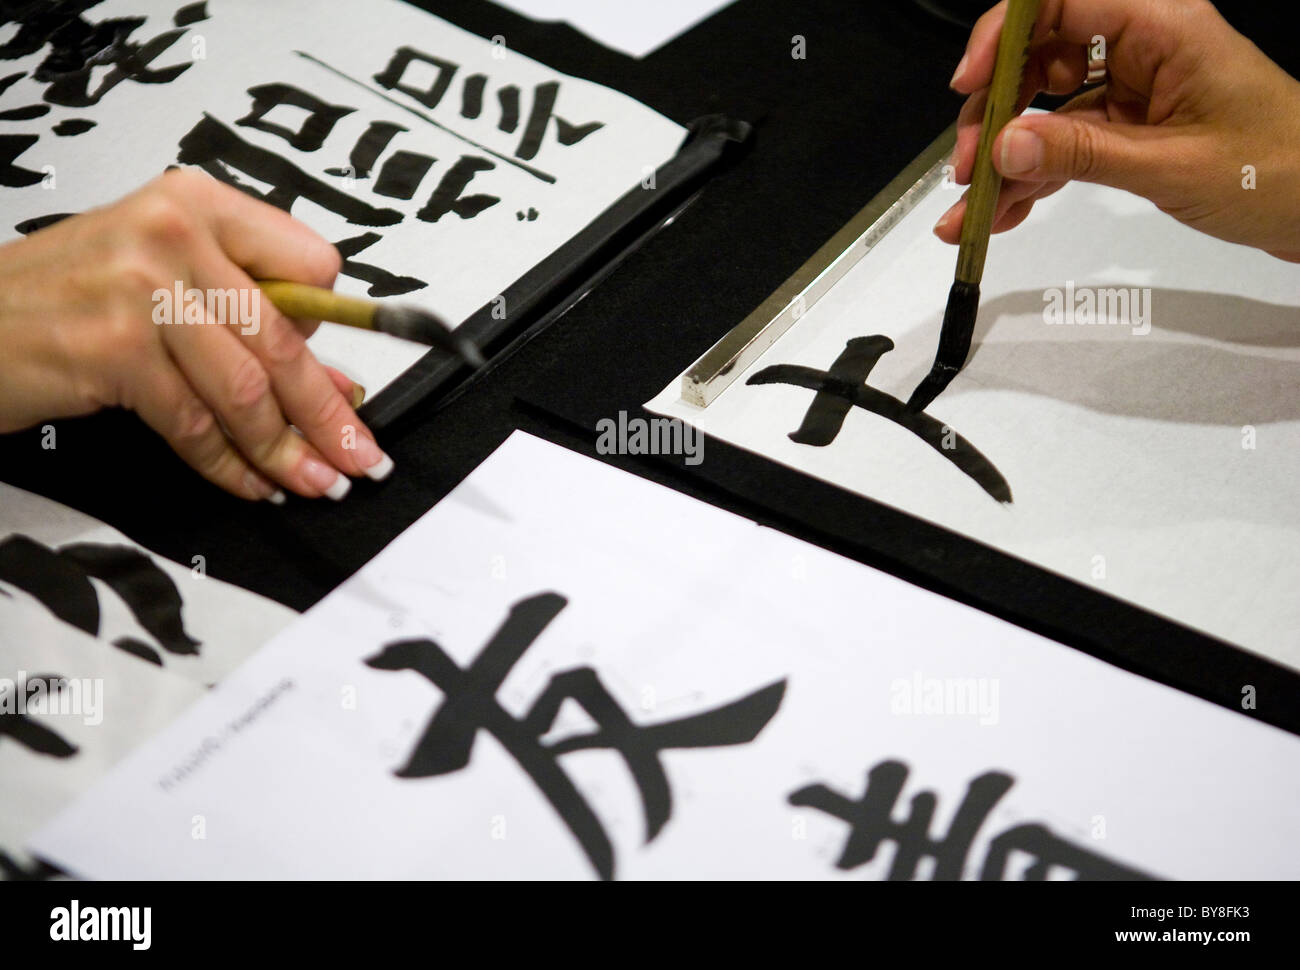 Students in a calligraphy class.  - Stock Image